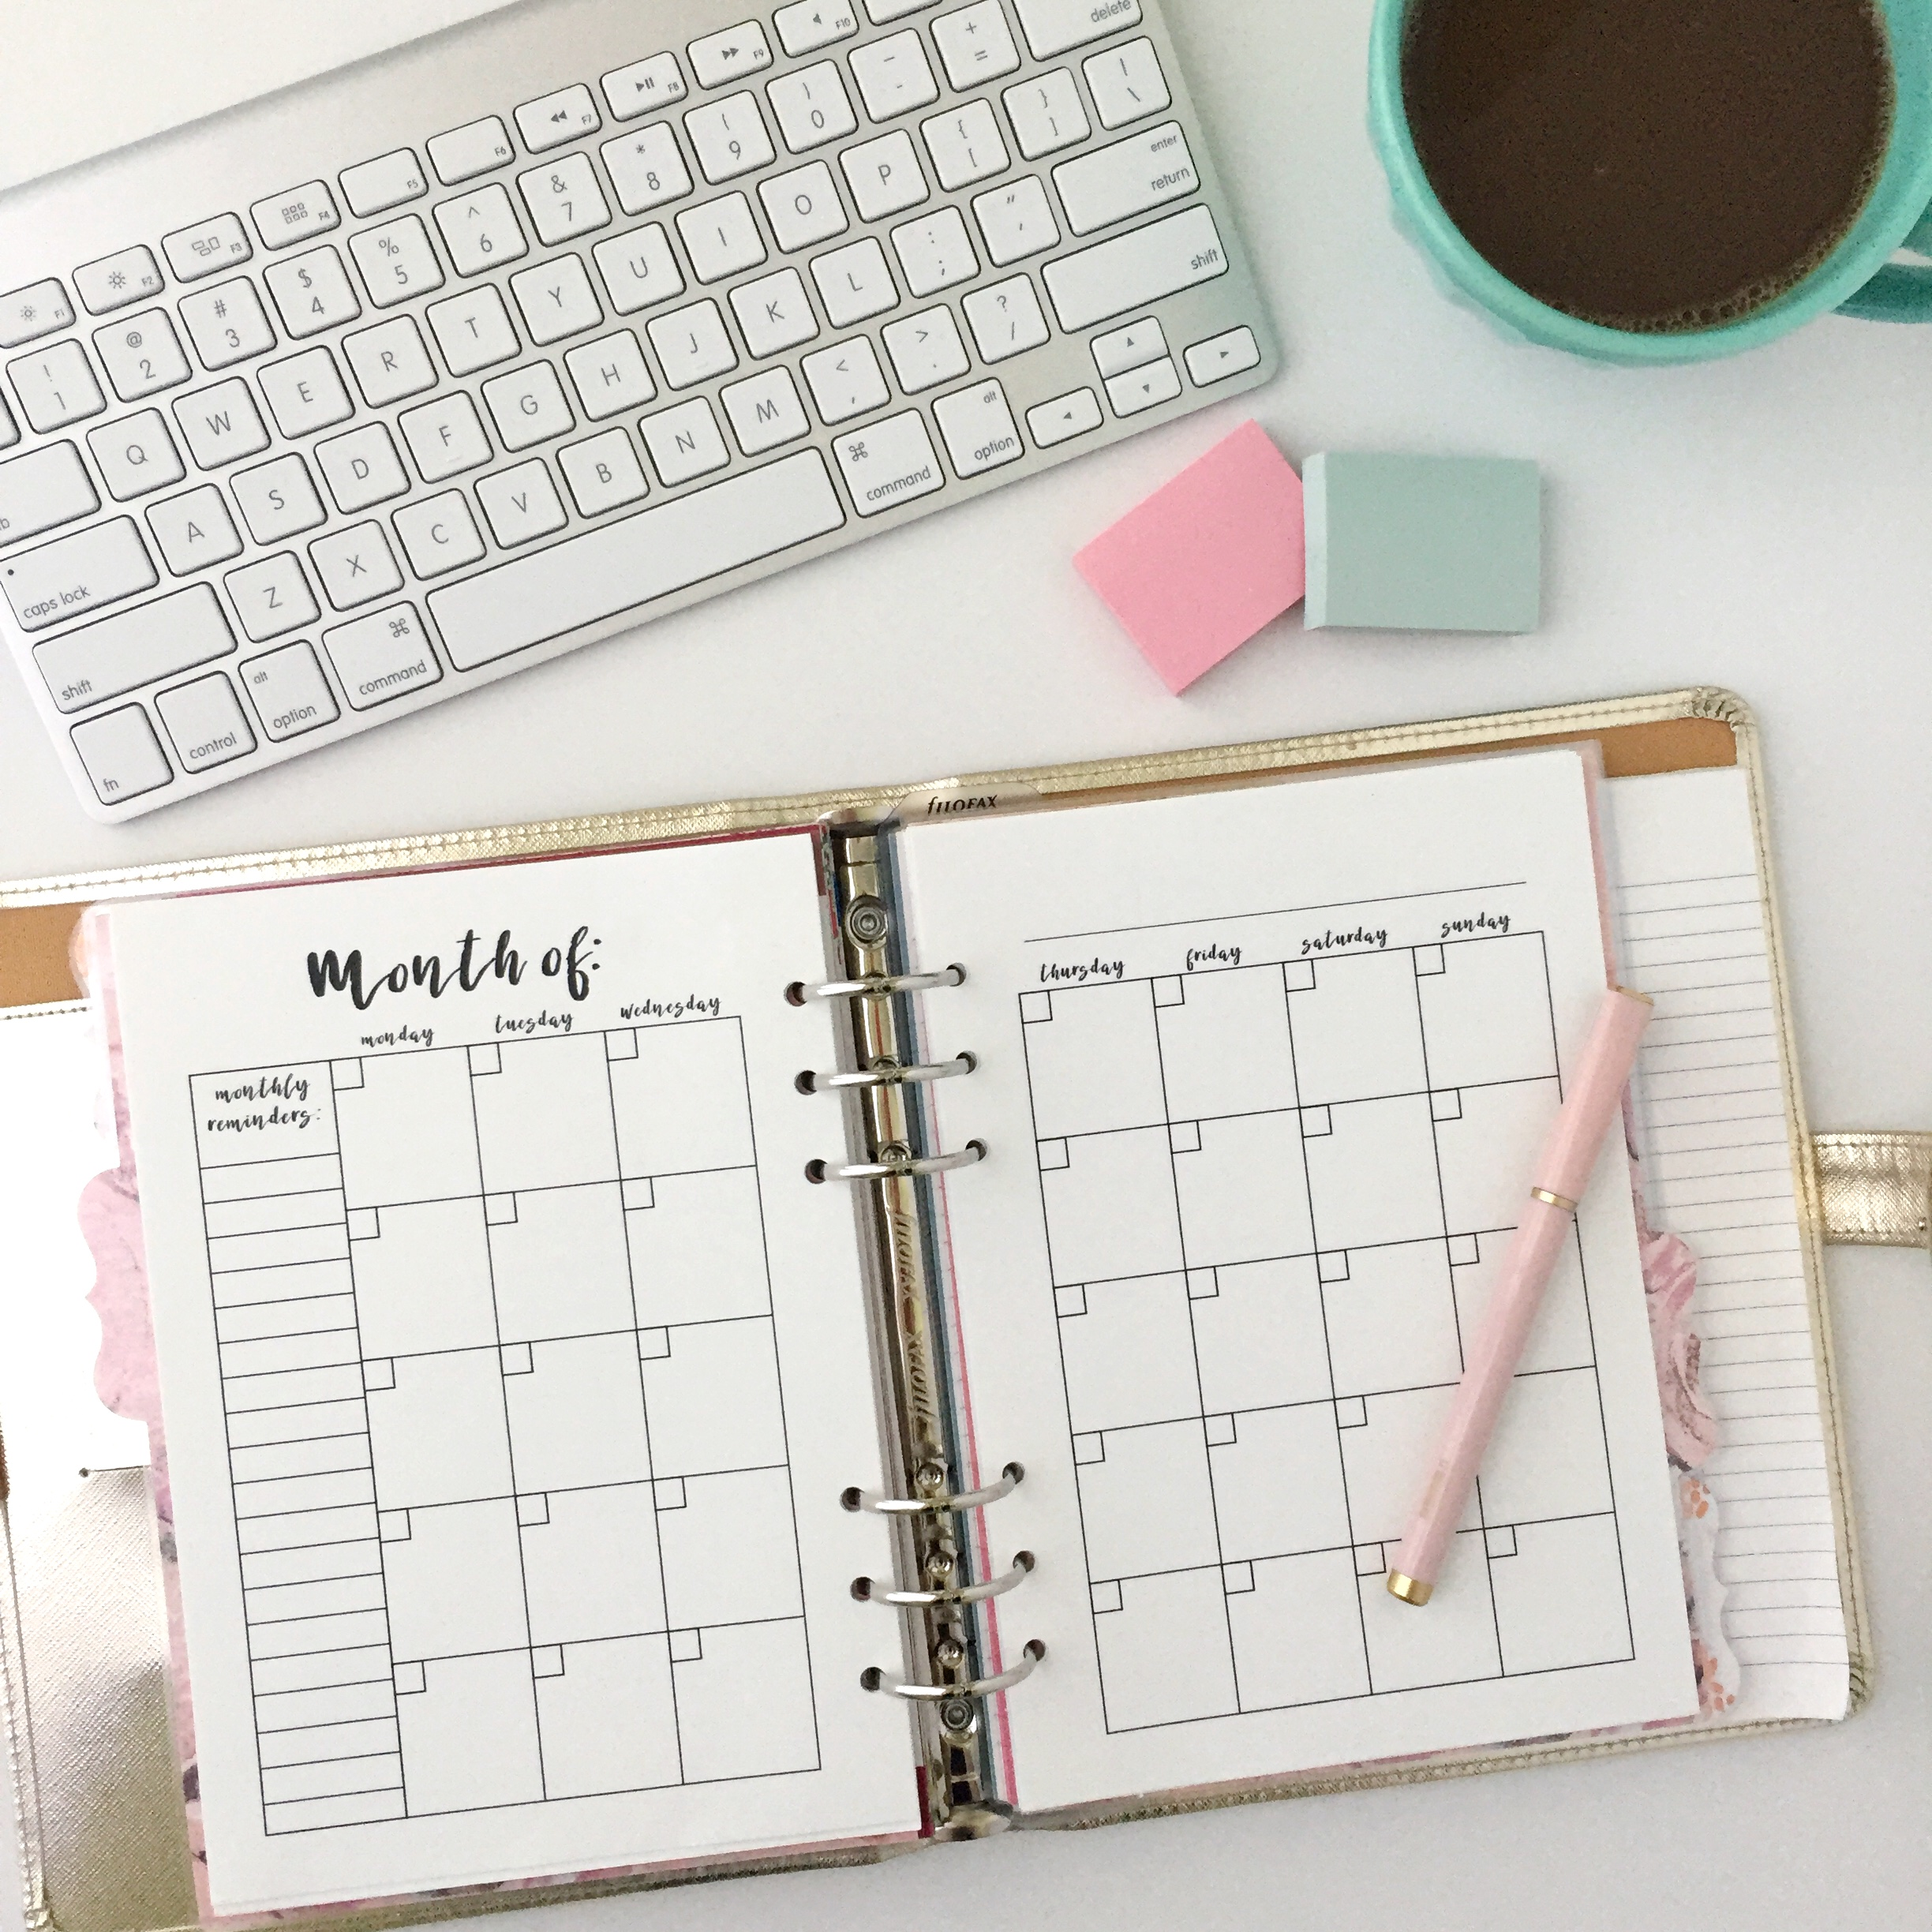 photograph about Free Printable Planners known as Month-to-month Calendar: Totally free Printable Planner Increase - Red Bows